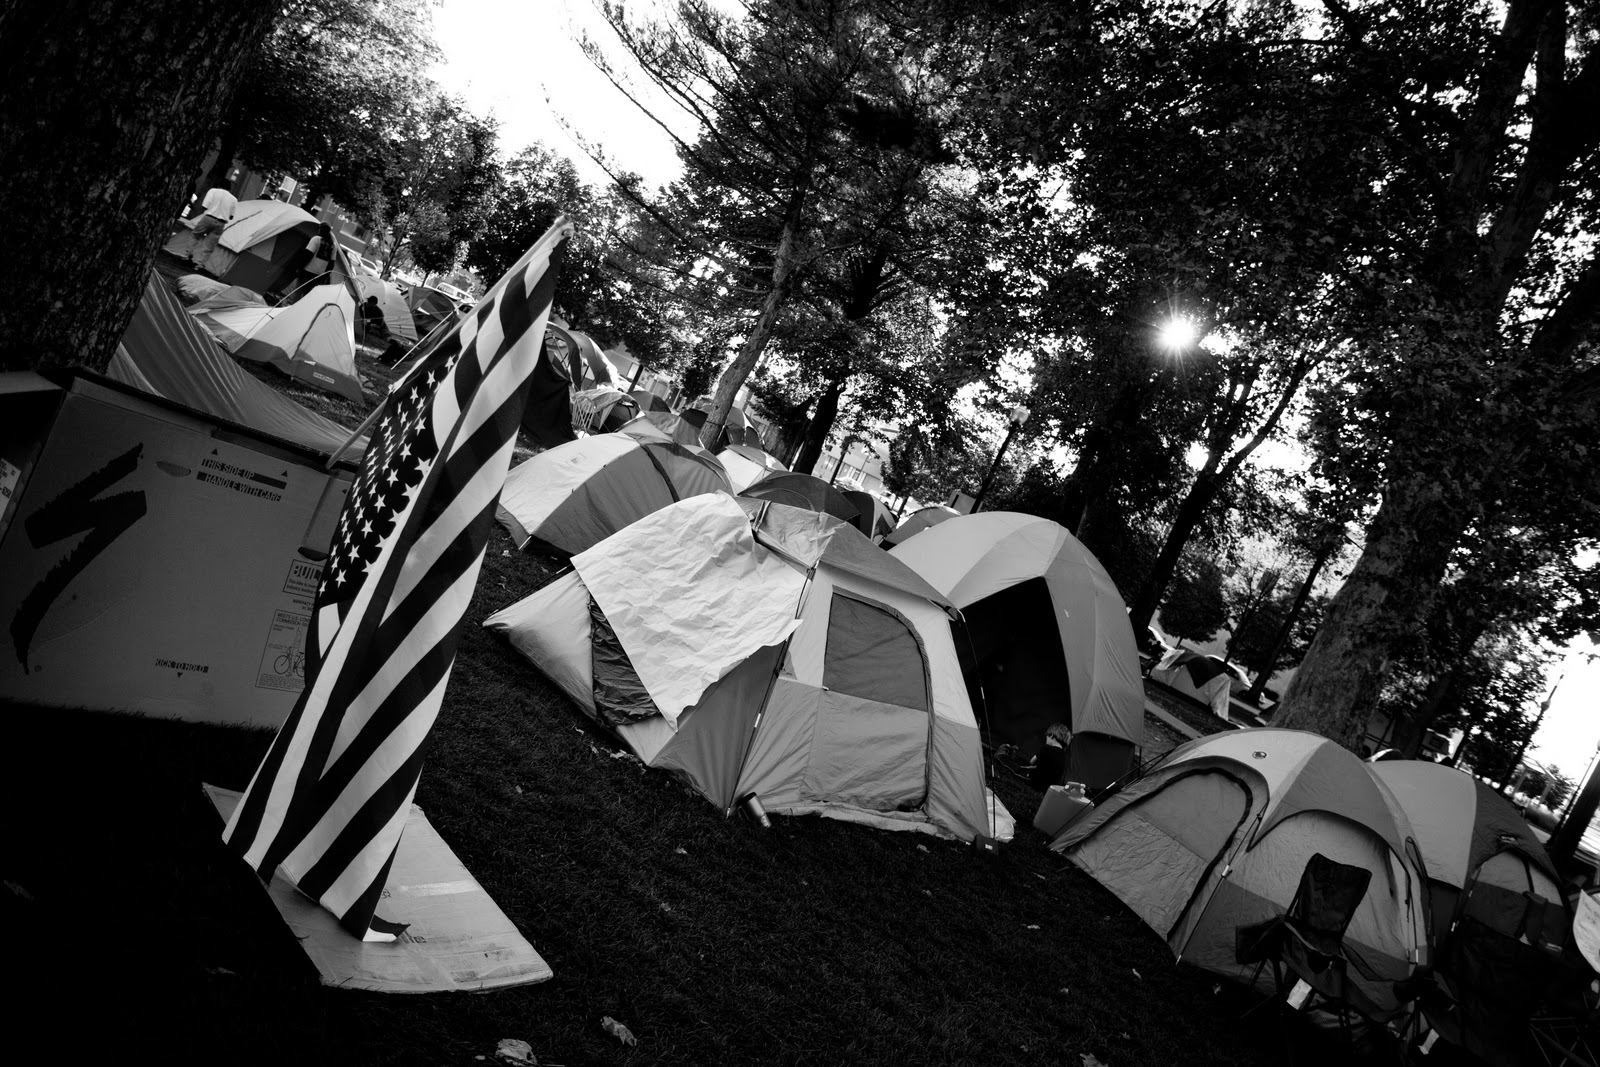 counterculture essay the occupy wall Free essay: counterculture for the first time in american history, a large  population of people of all ages, classes, and races came together to challenge.